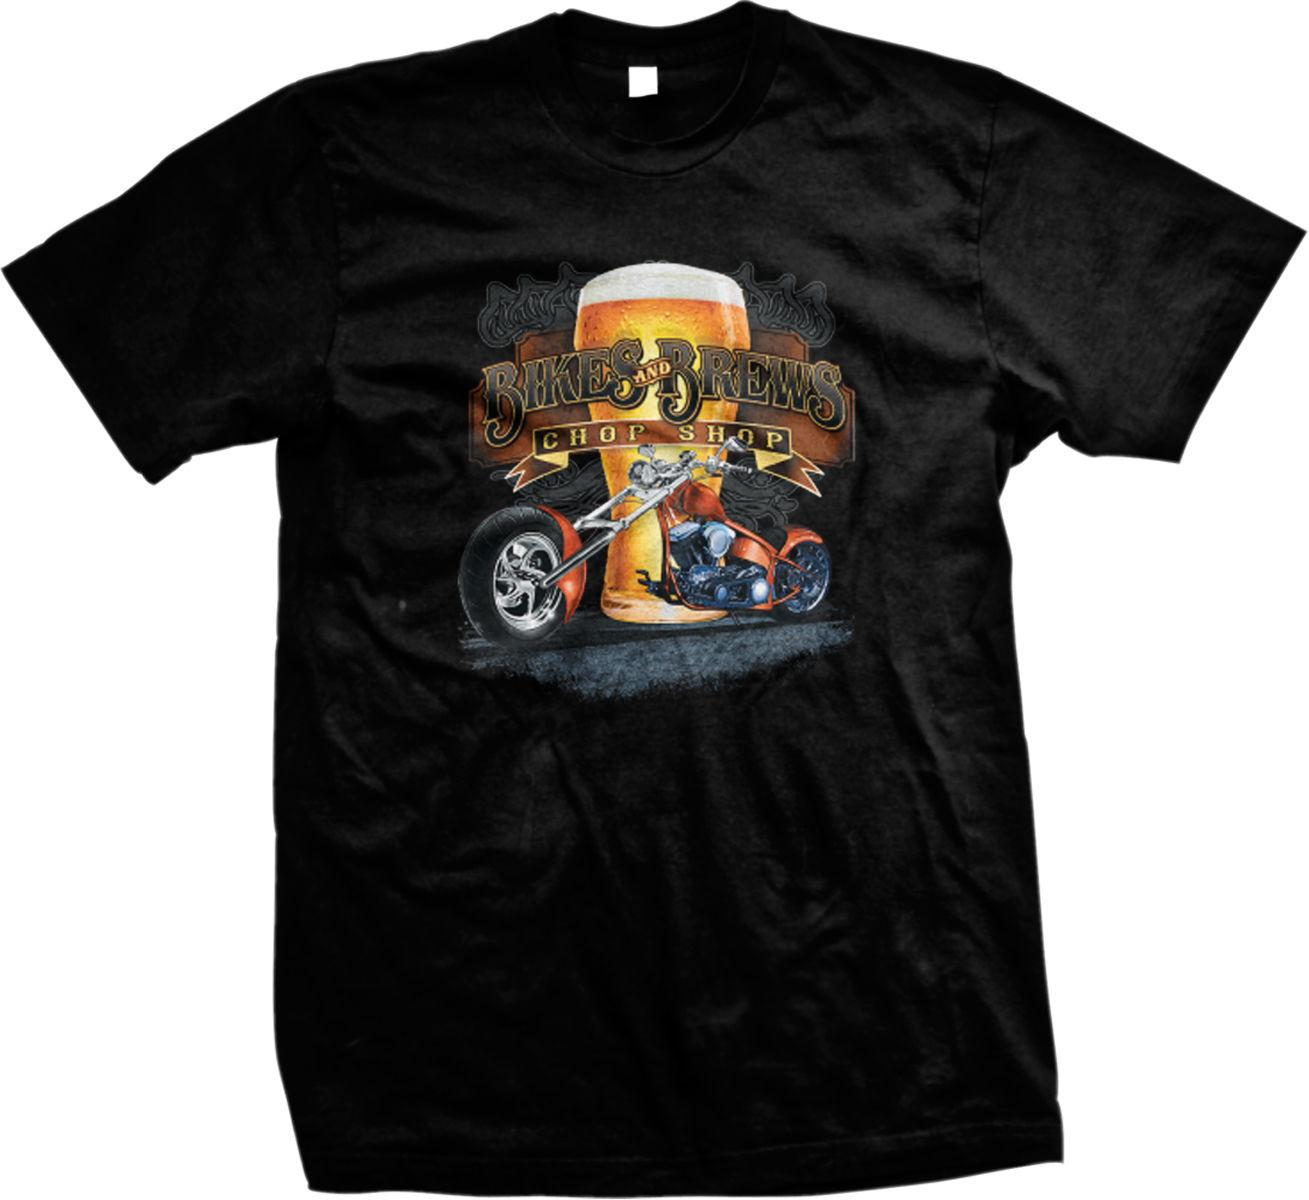 Bikes And Brews Chop Shop Motorcycle Chopper Beer Glass Mens T-shirt Men Women Unisex Fashion tshirt Free Shipping black